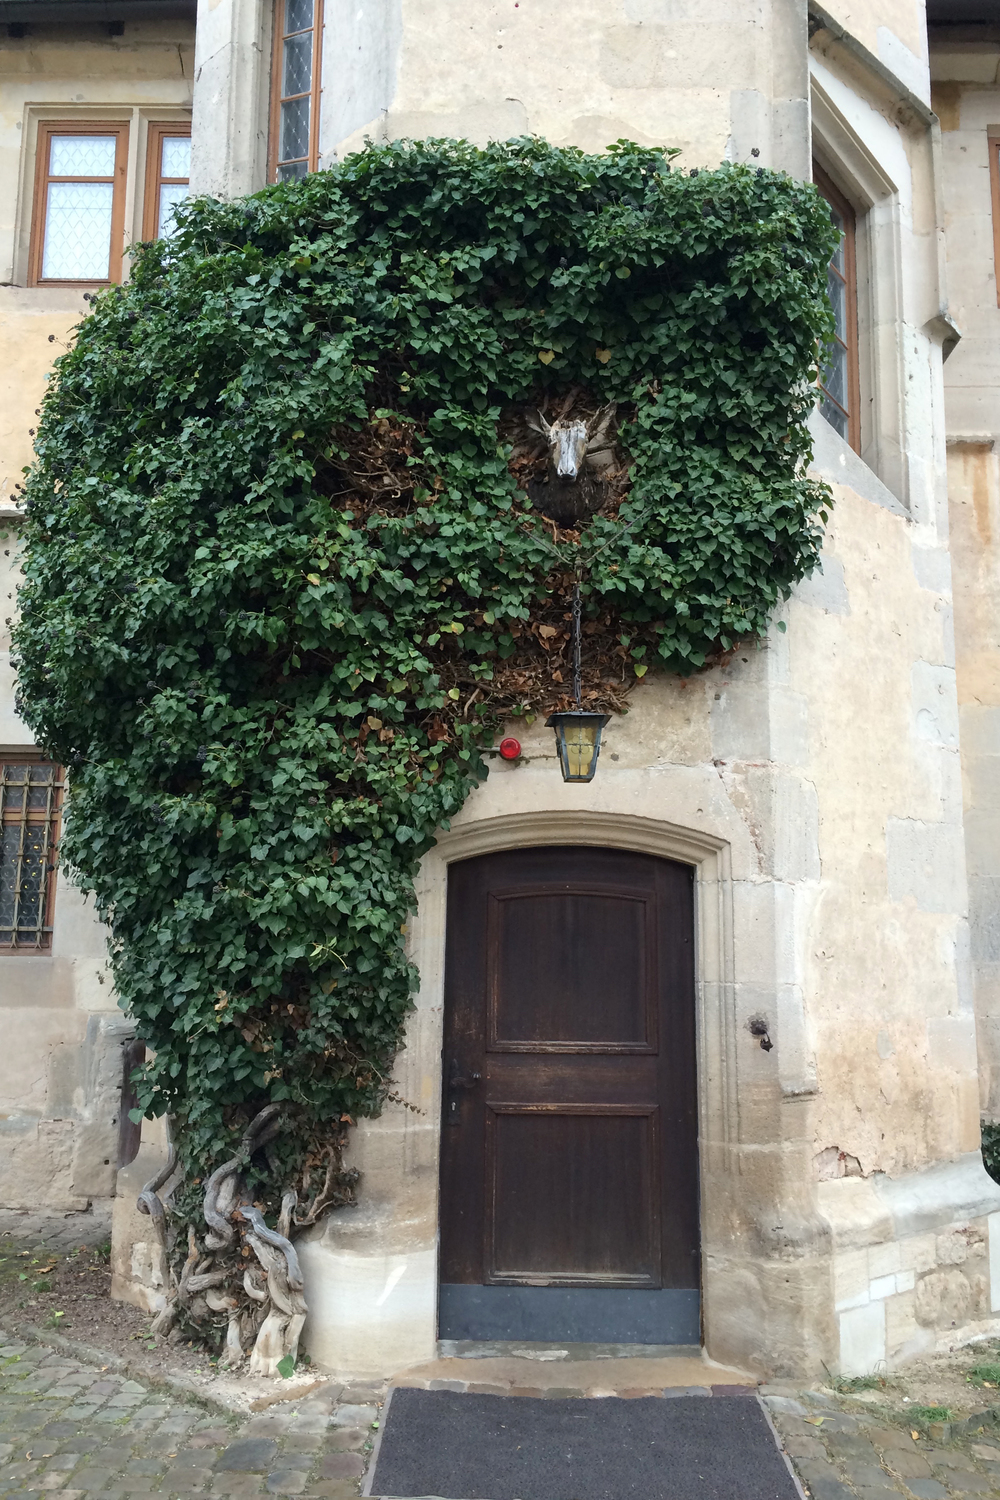 I liked these cool old vines that wrapped around some of the walls, doorways, and arches.